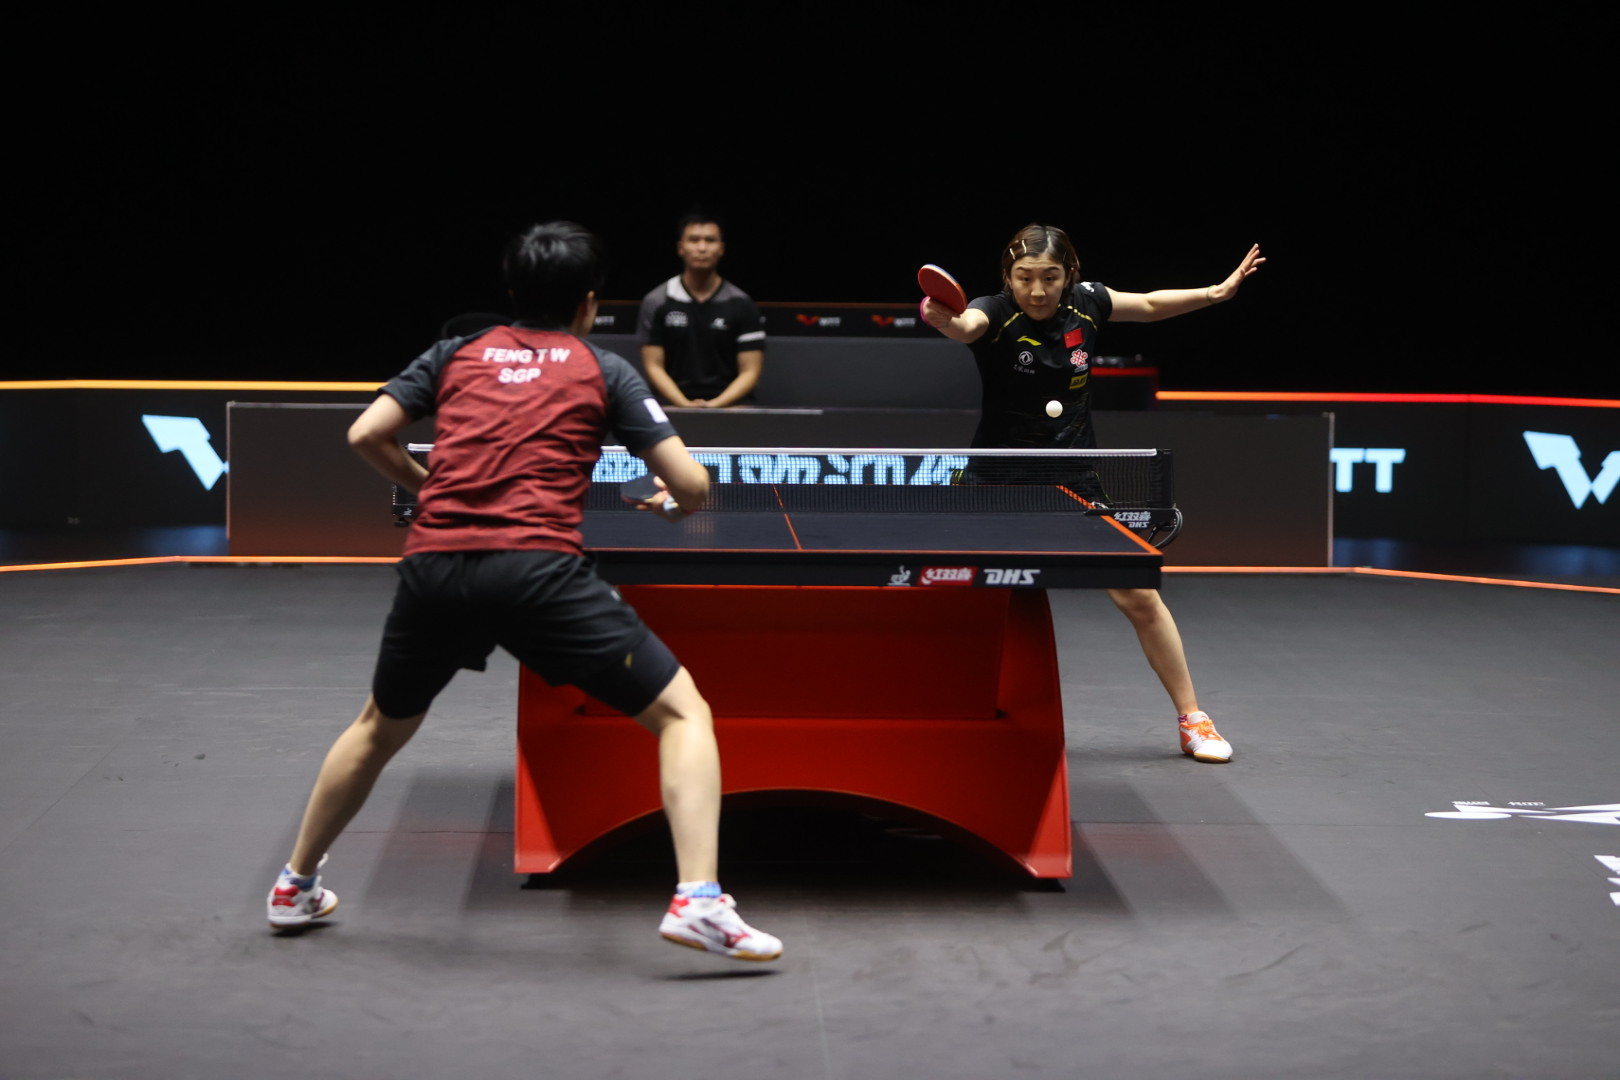 A World Table Tennis promotional showcase is currently taking place in Macau ©ITTF